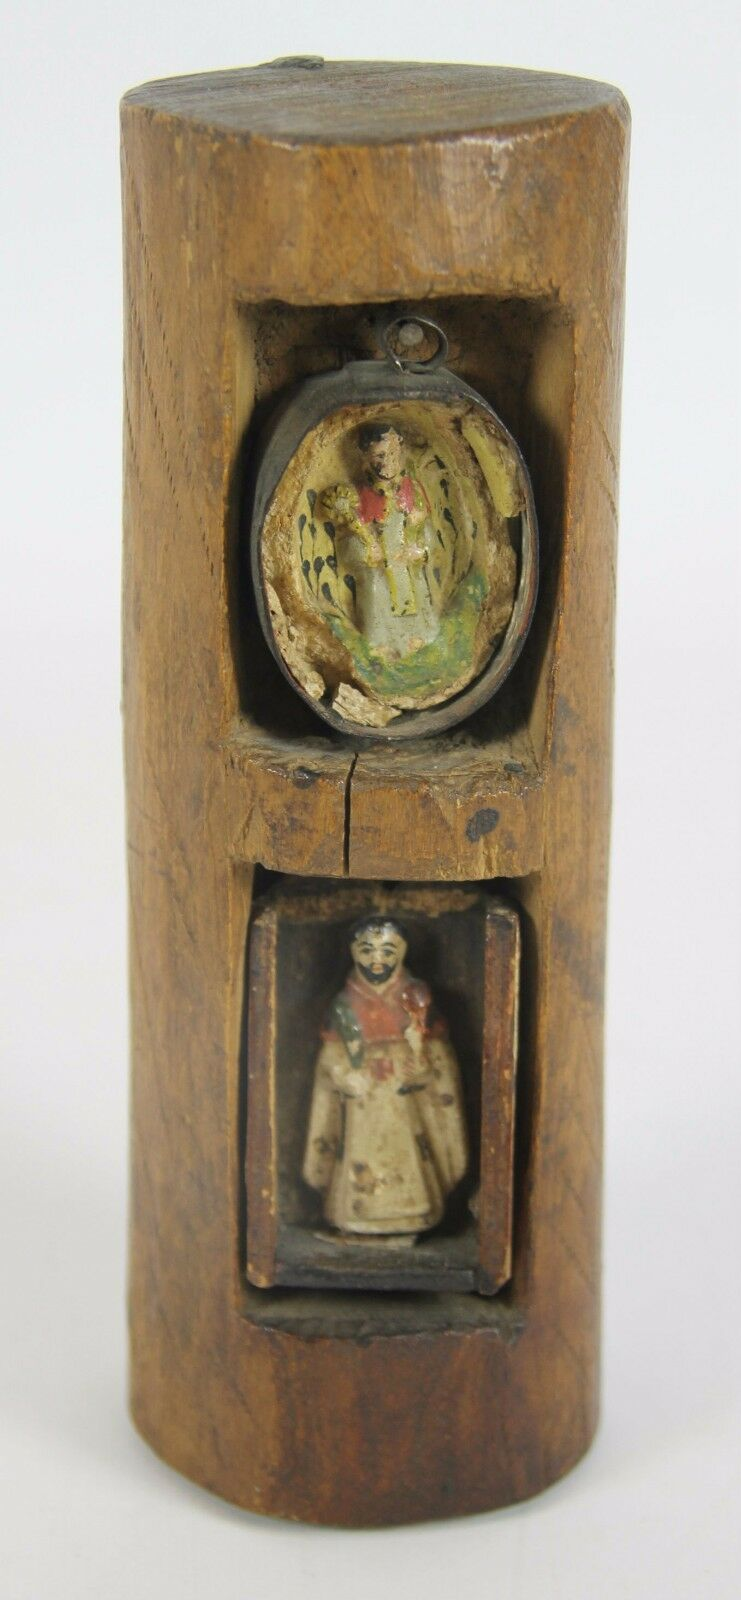 PAIR OF RELIQUARY. POLYCHROME CARVED WOOD. CENTURY XVIII.